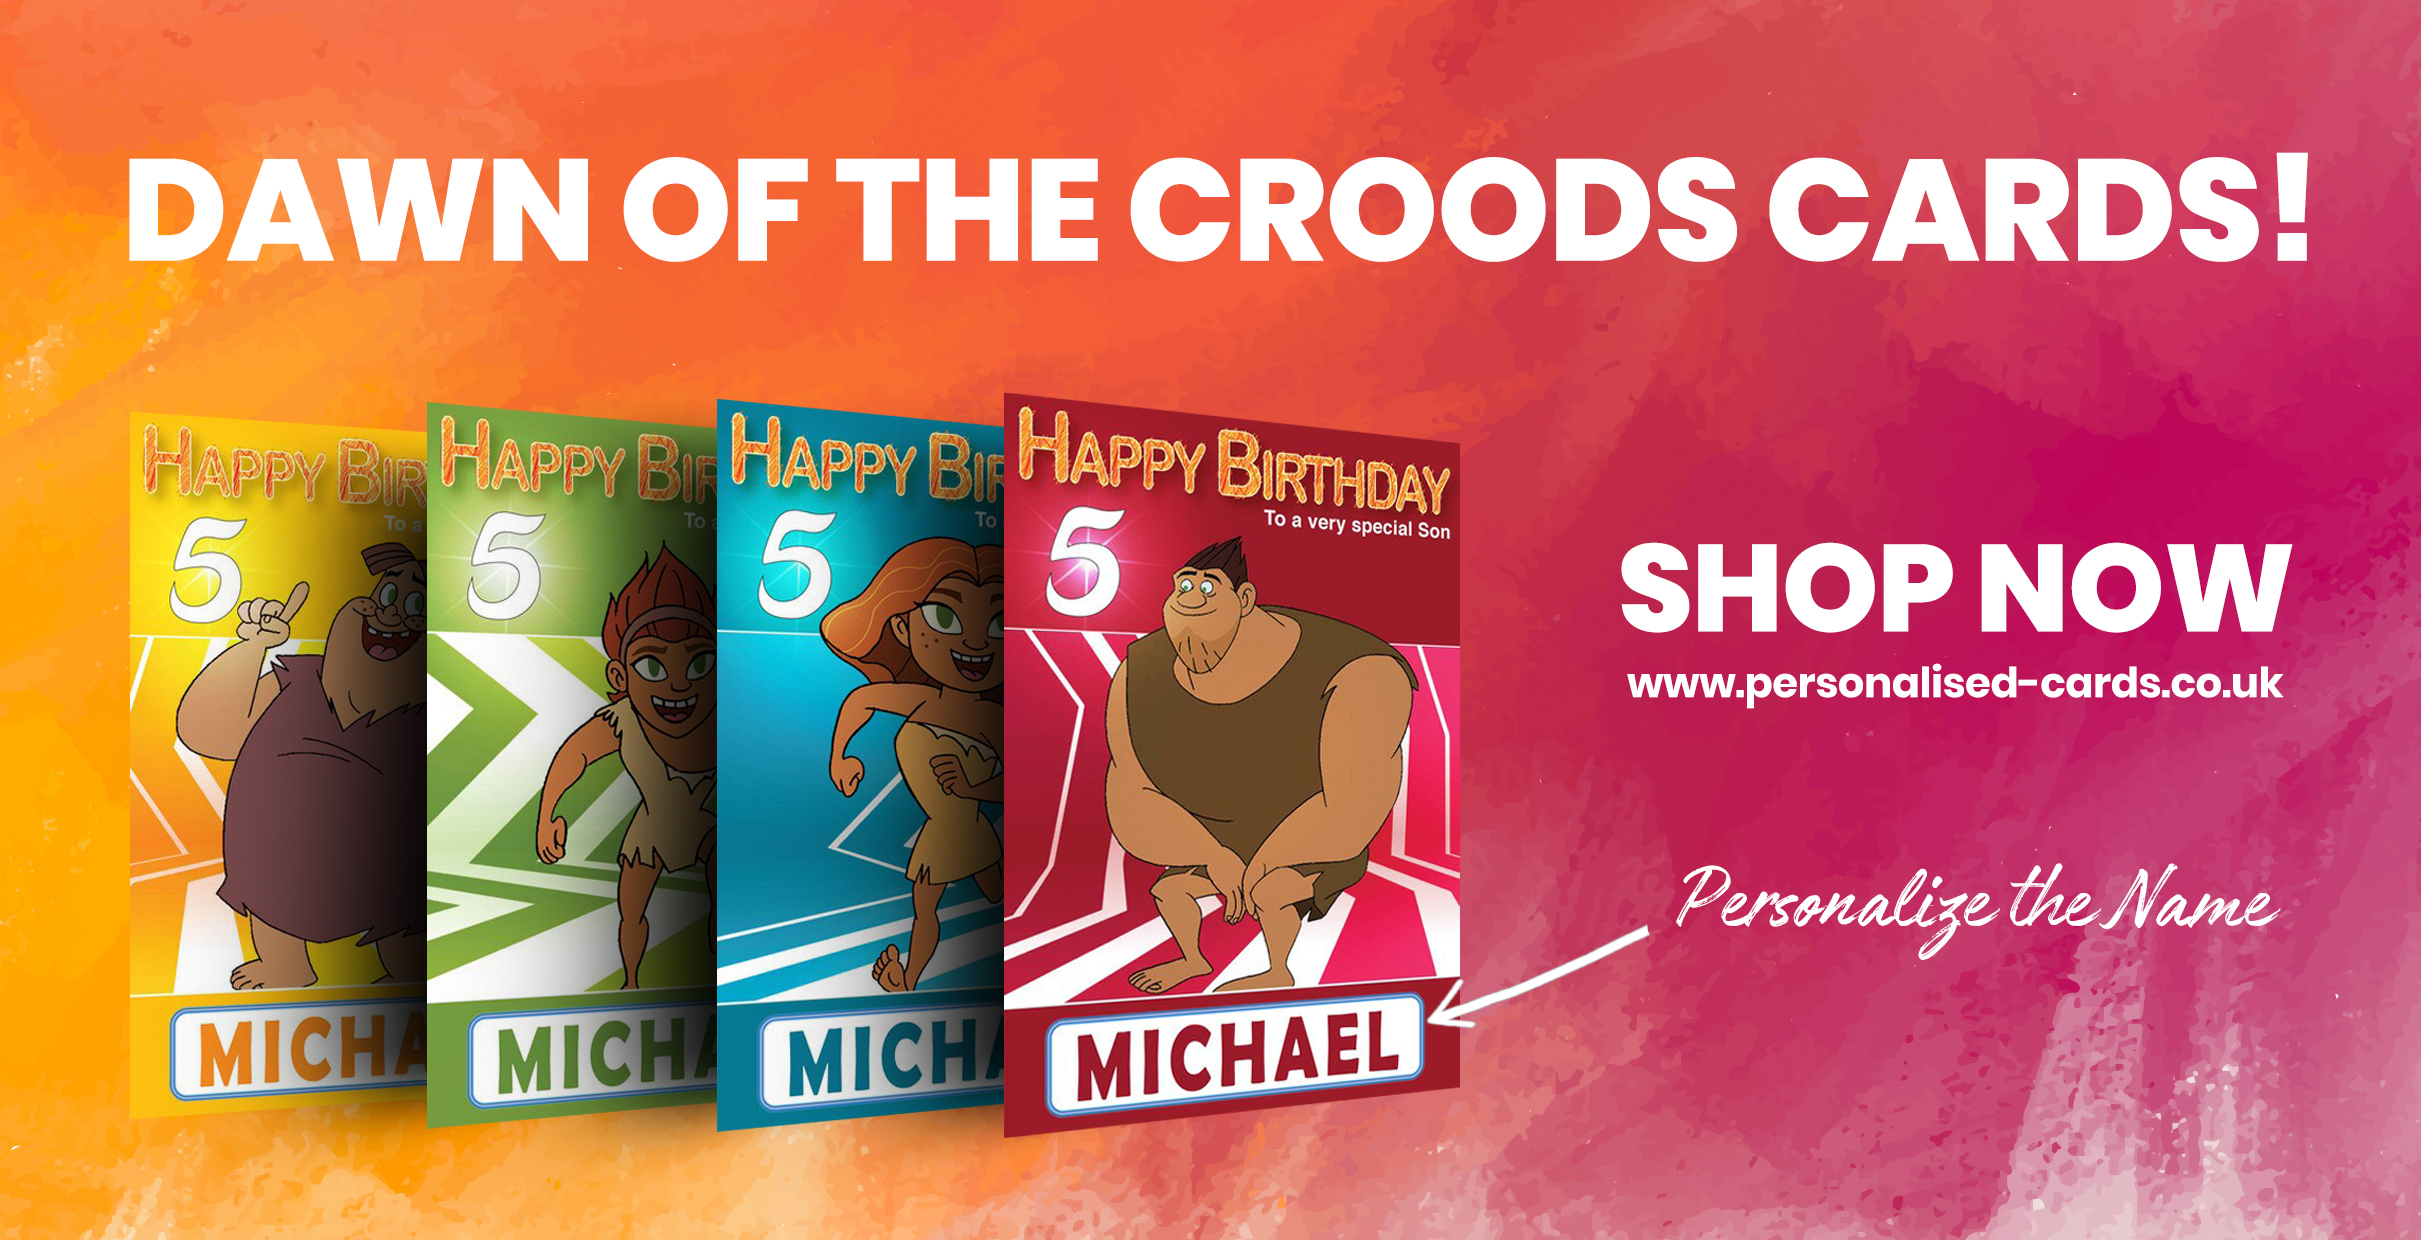 dawn-of-the-croods-cards.jpg